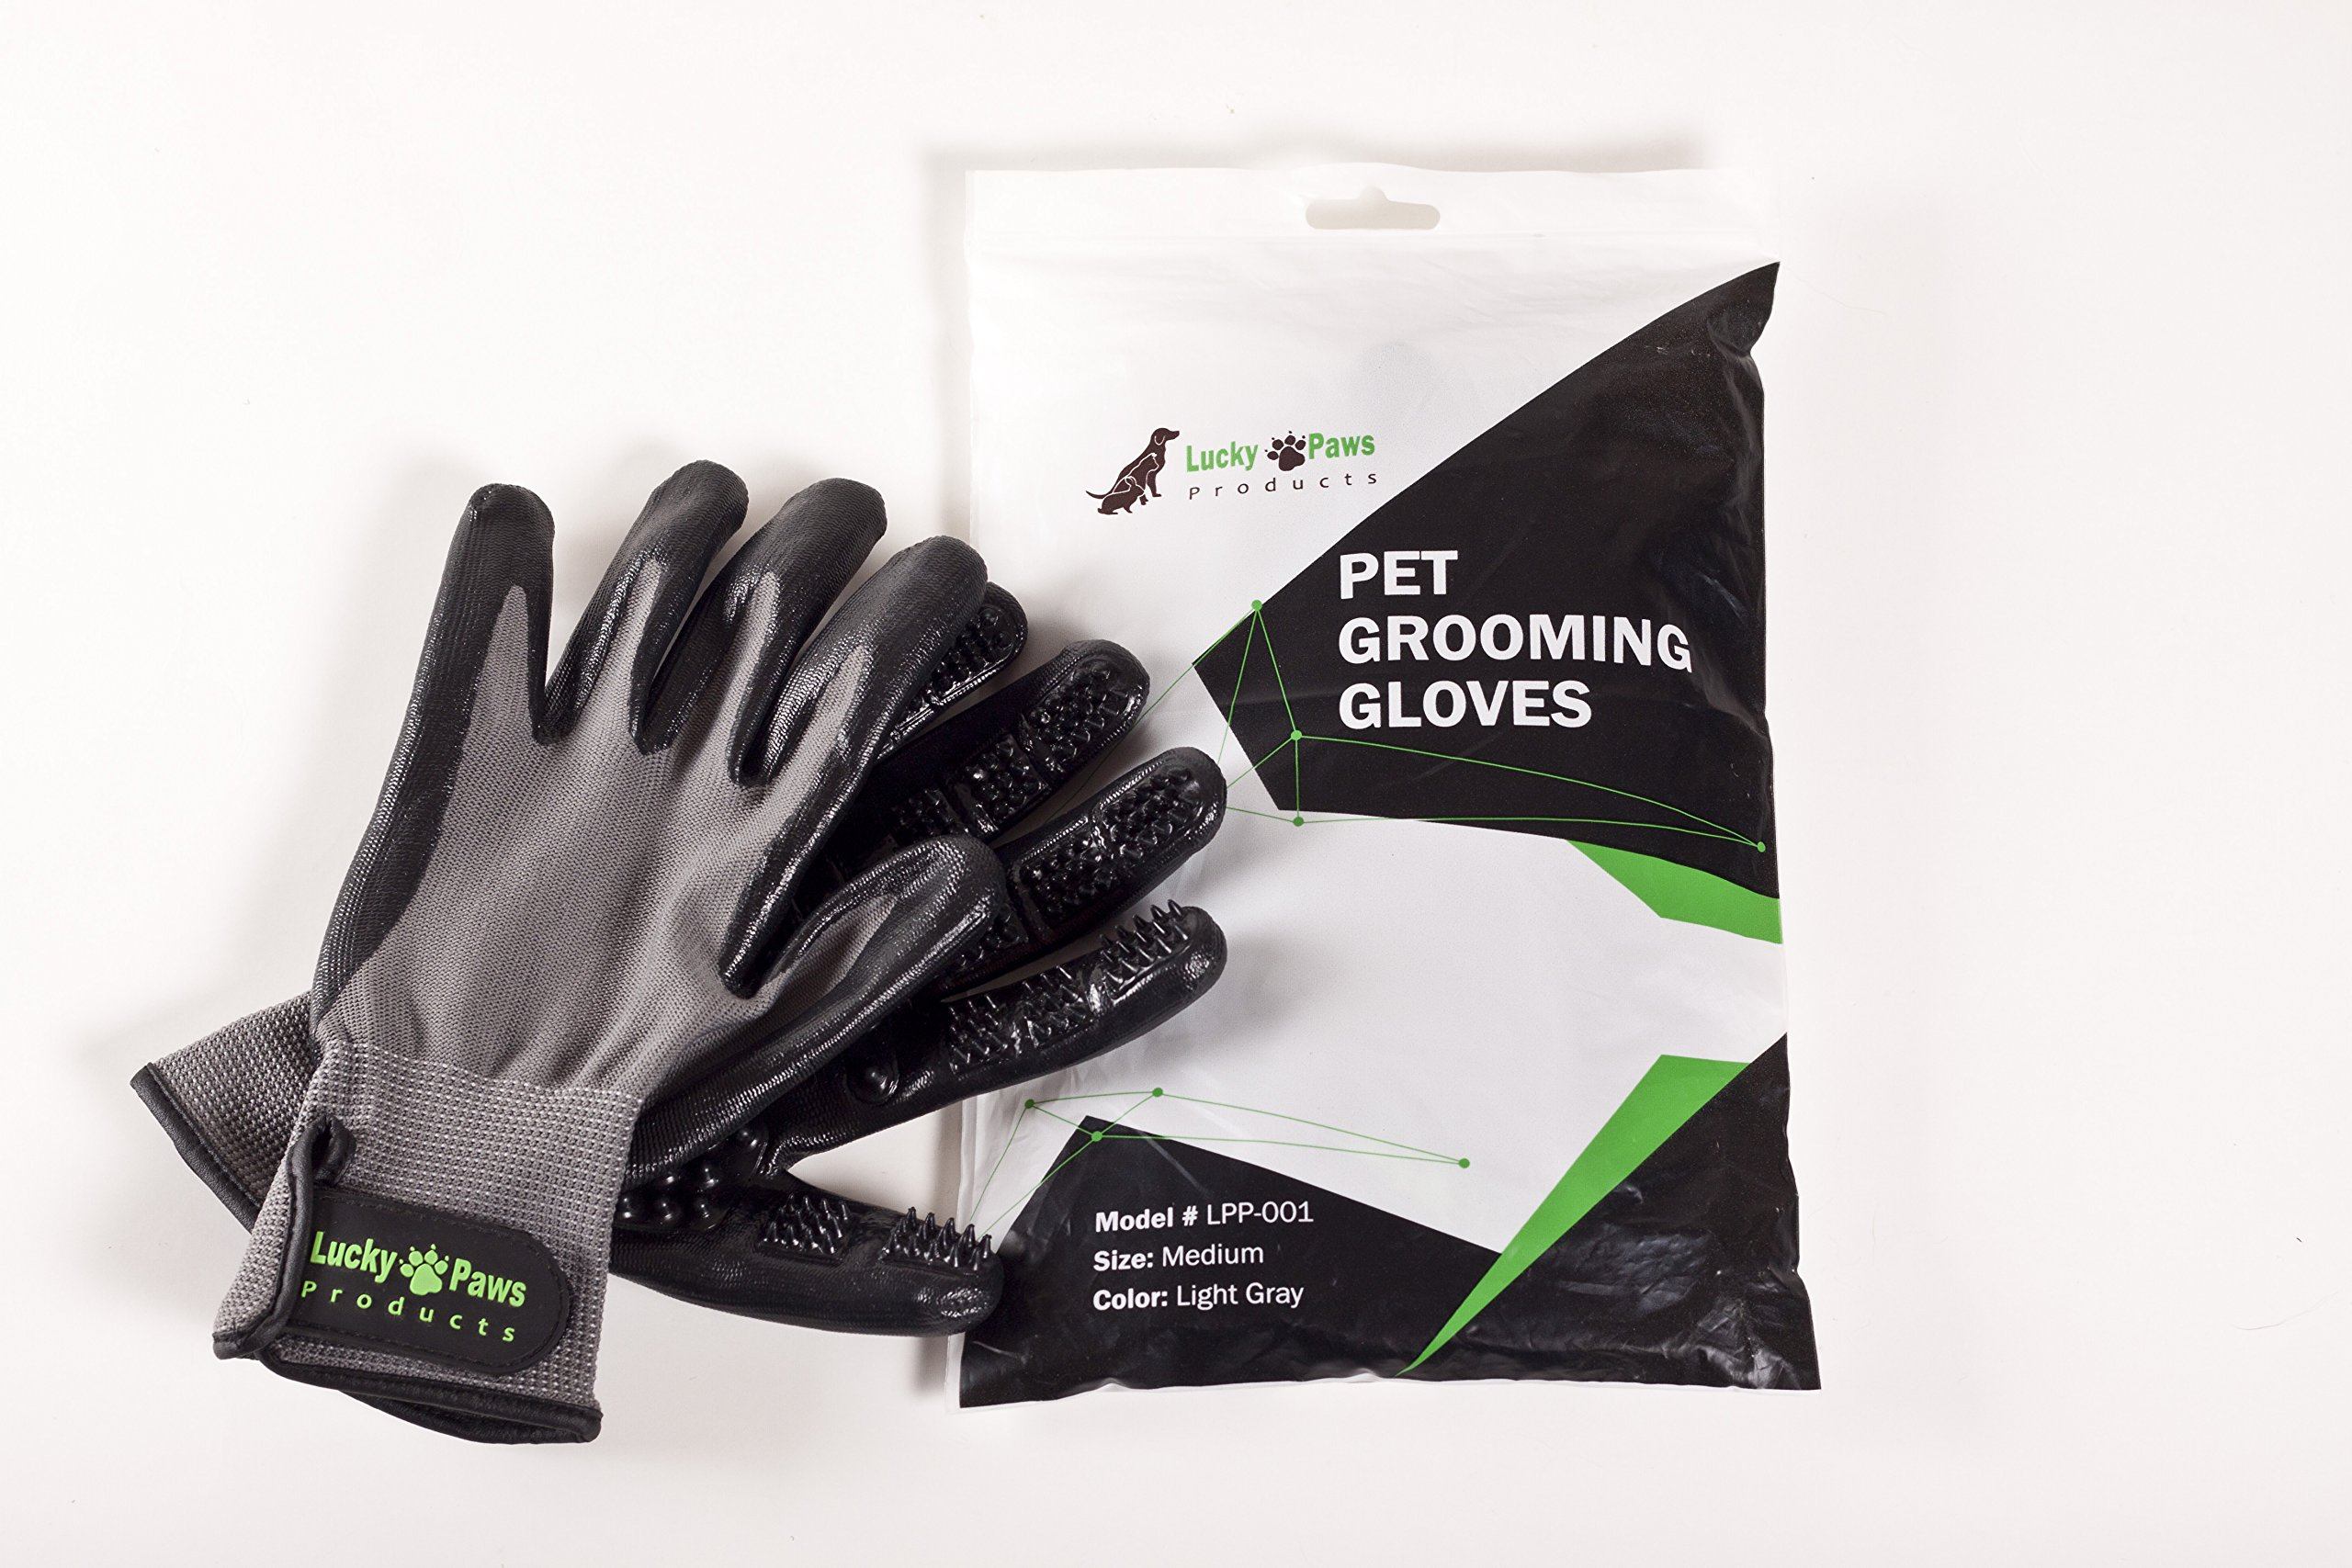 Lucky Paws Products Premium Pet Grooming Gloves – Gentle Deshedding Brush Glove - Use As A Pet Hair Remover for Shedding, Bathing & Grooming - Perfect for Cats, Dogs, Horses Or Other Pets. by Lucky Paws Products (Image #6)